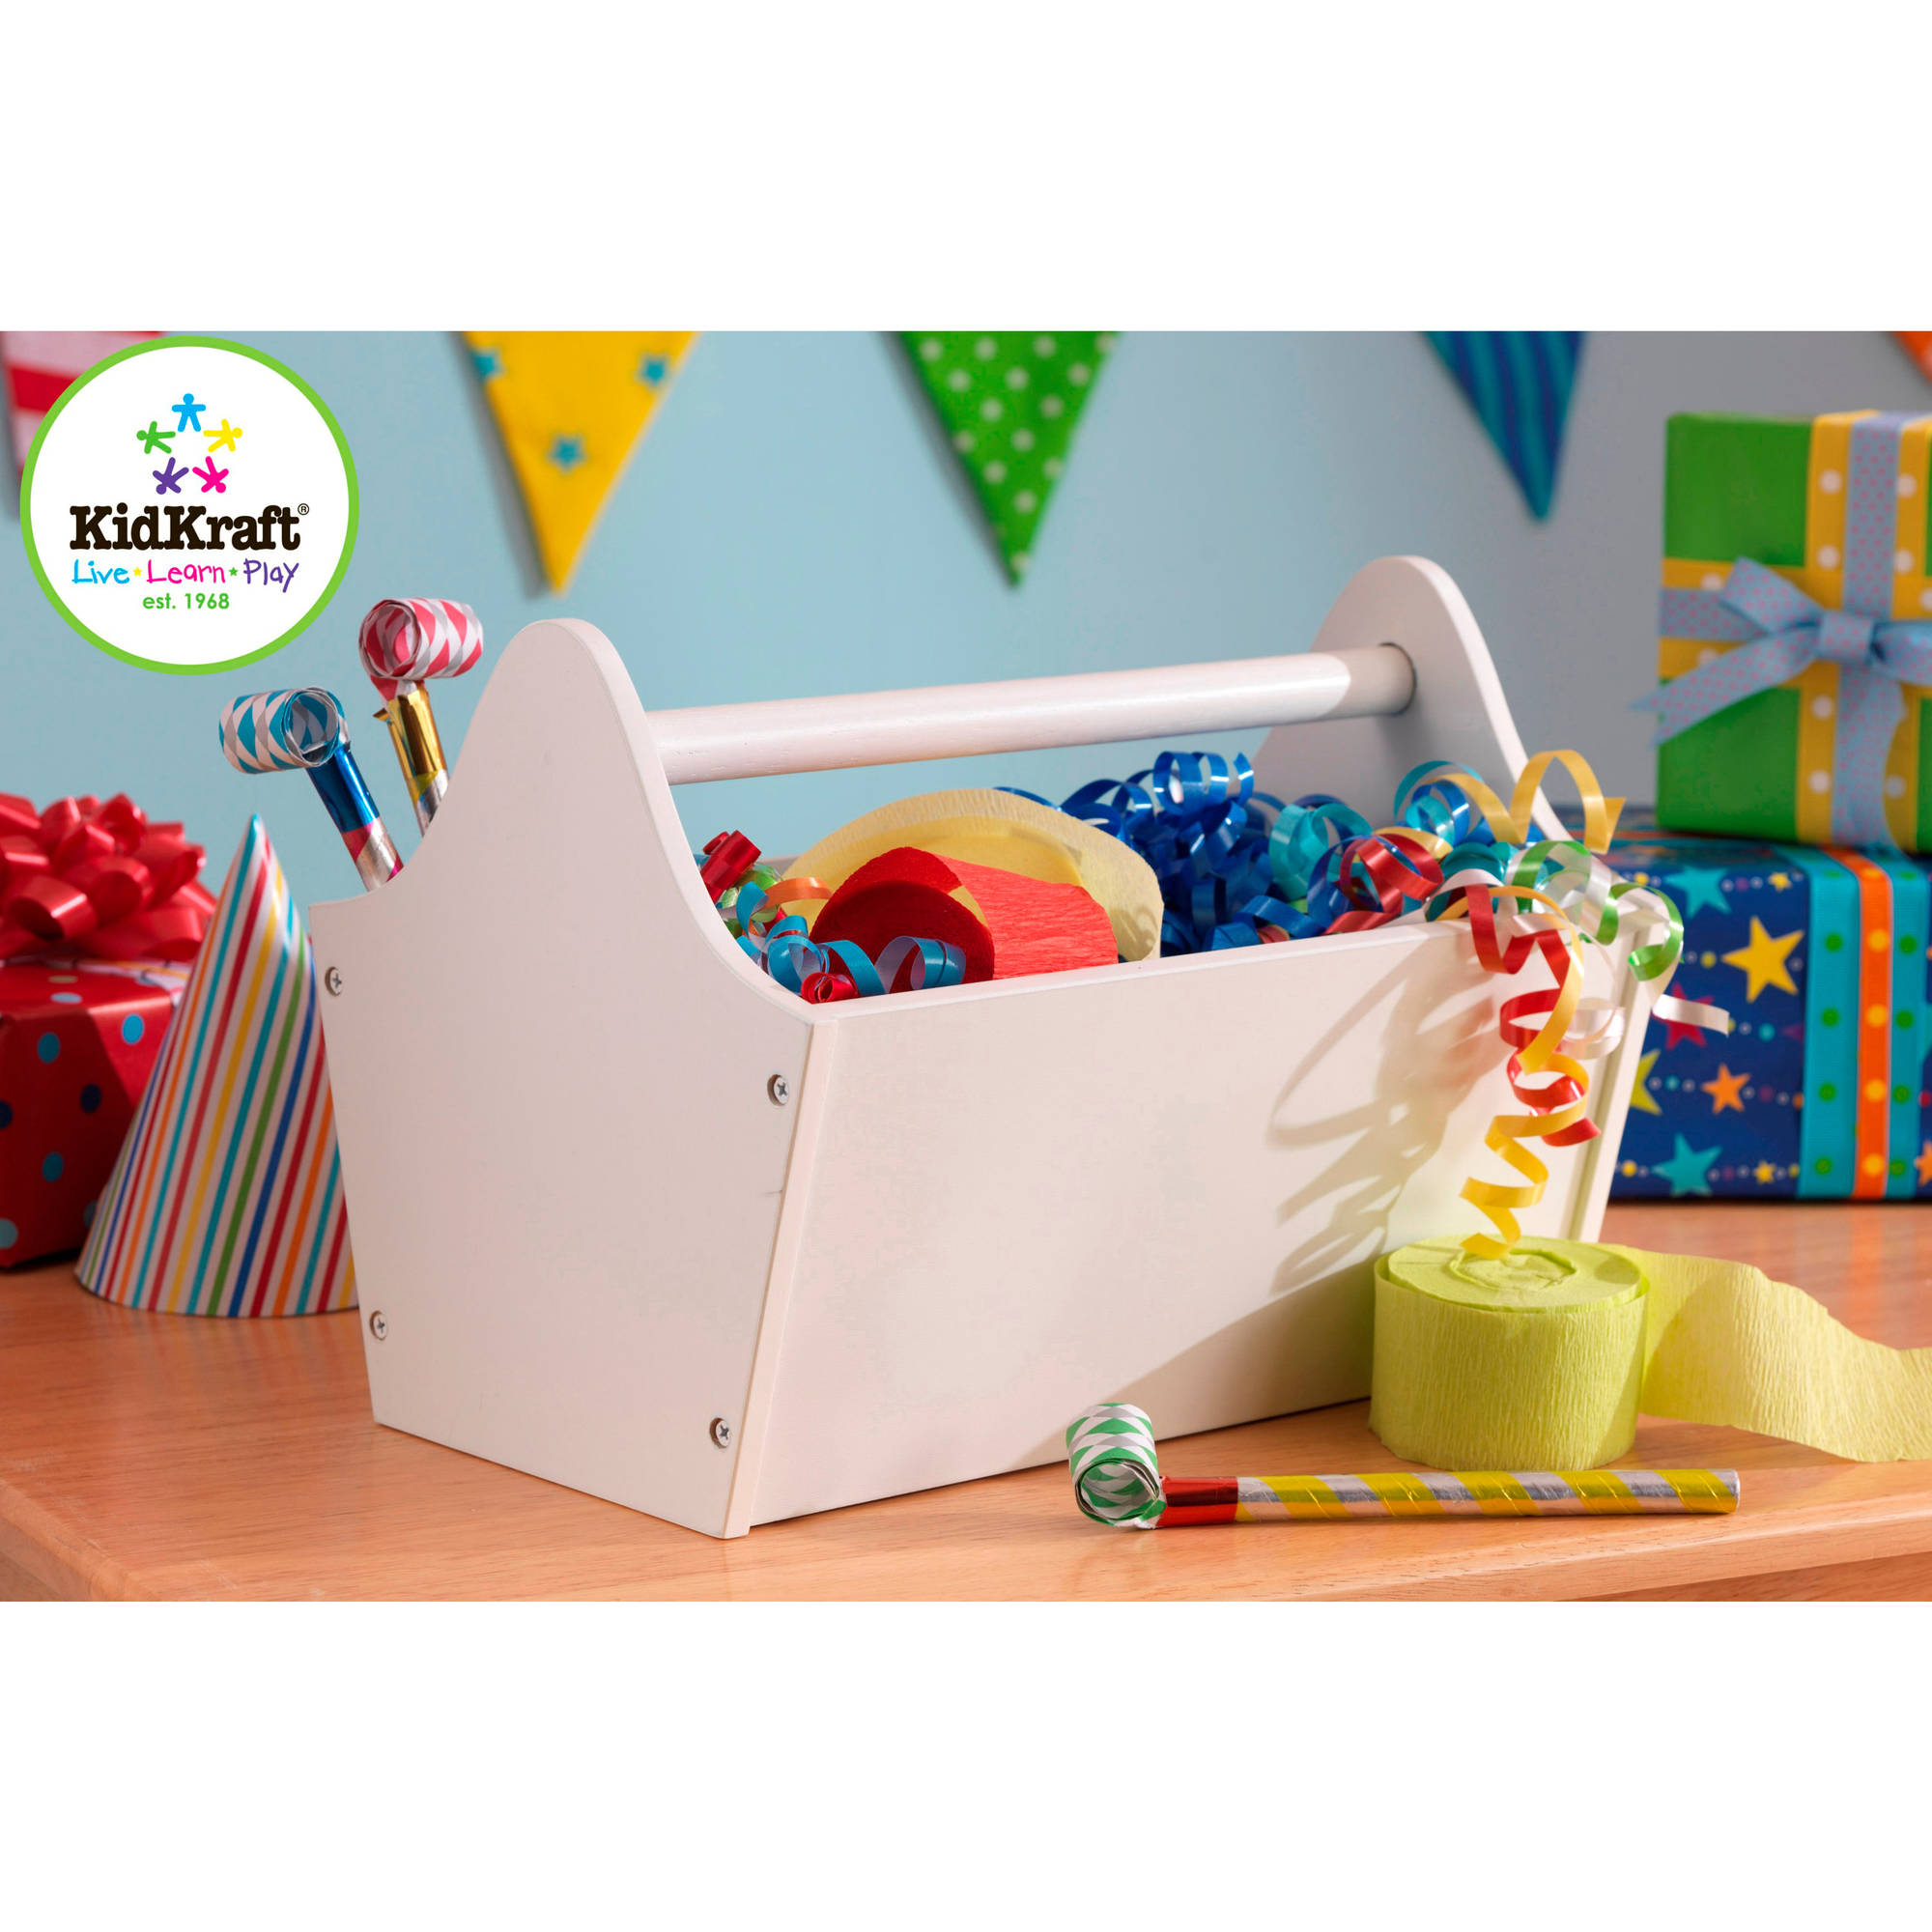 KidKraft - Toy Caddy, Multiple Colors